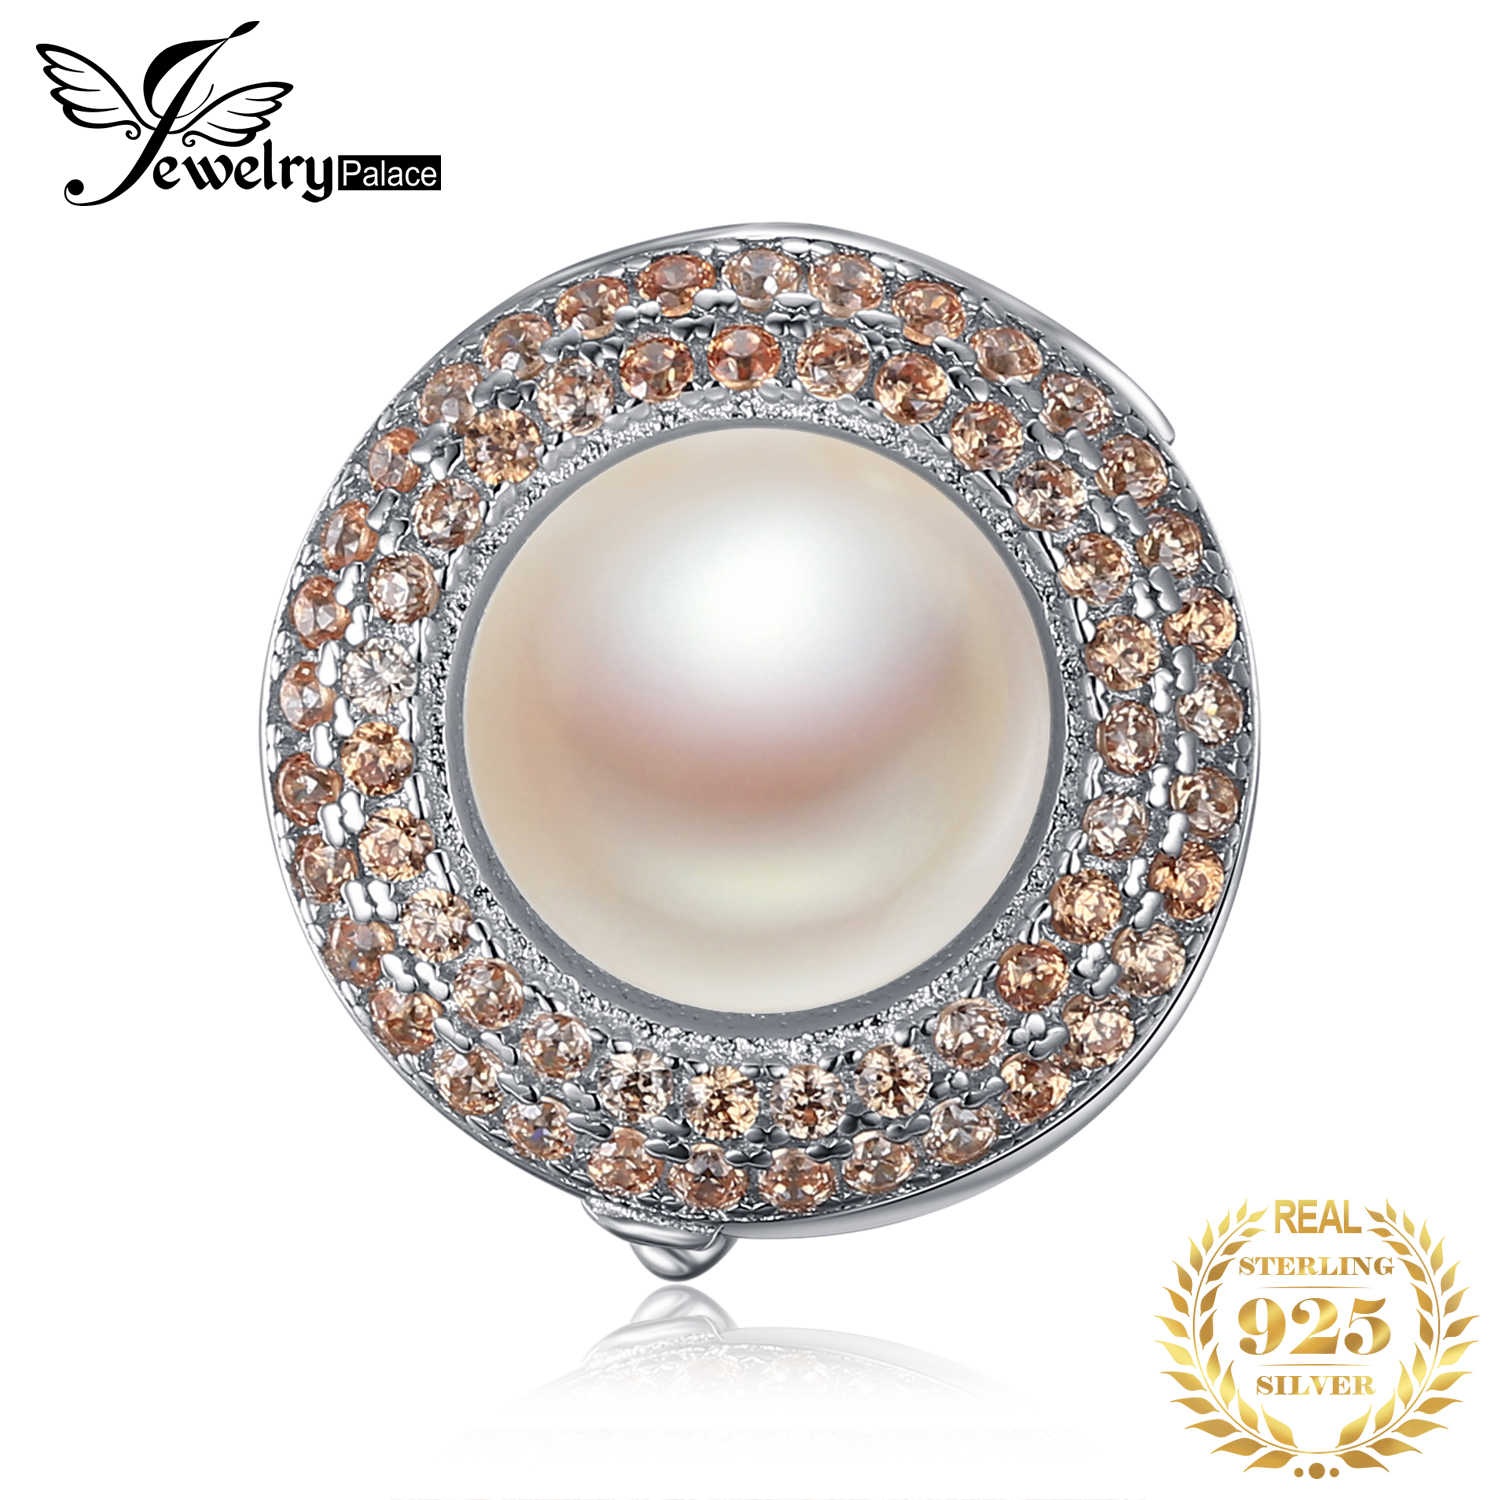 JewelryPalace Hollow Flower Round Cut Halo Pearl Taupe Cubic Zirconia Locket Pendant 925 Sterling Silver Not Include A Chain